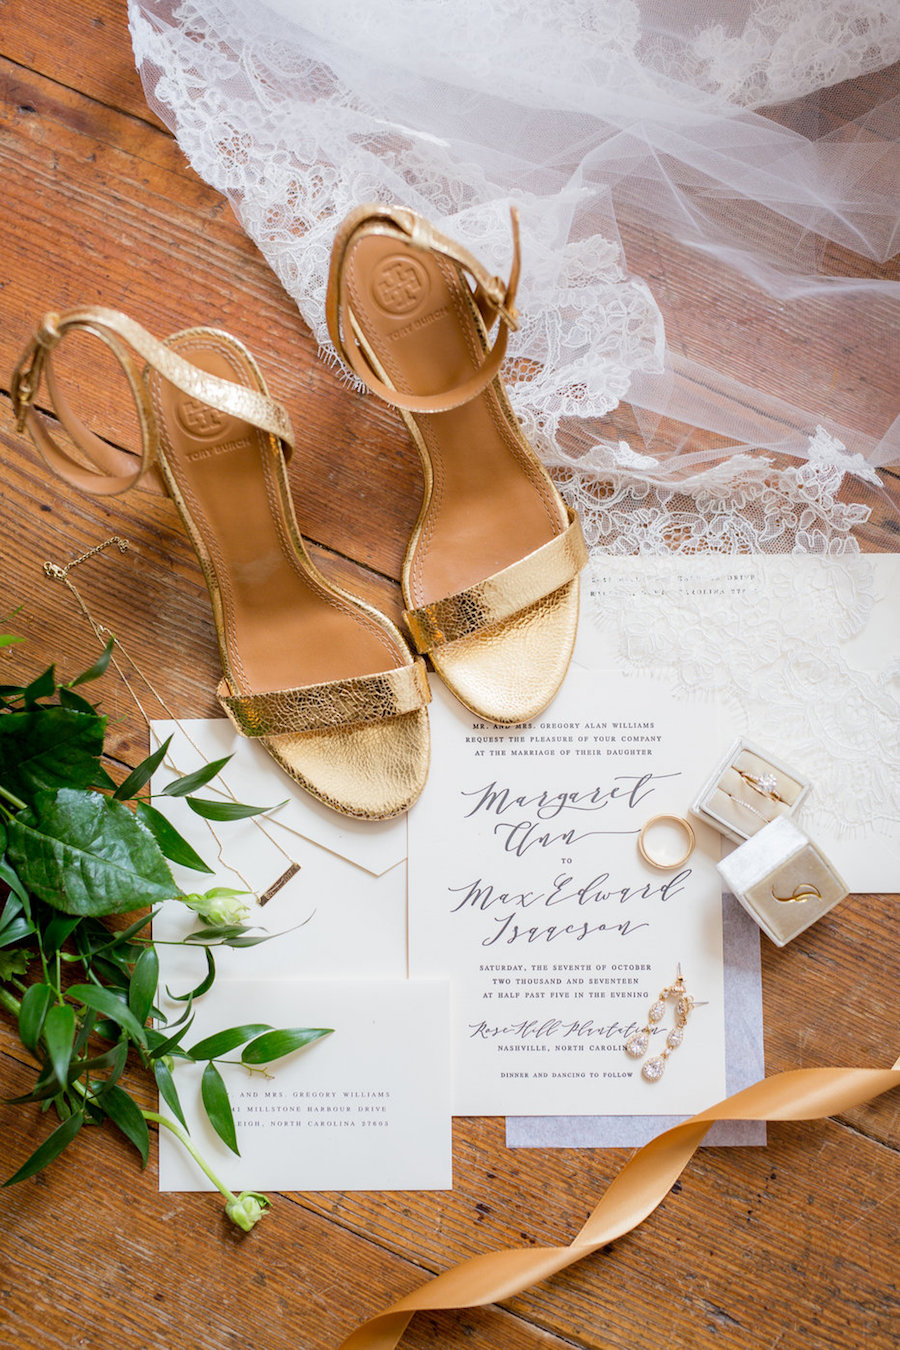 Classic Black-Tie Wedding with Gold and White Details